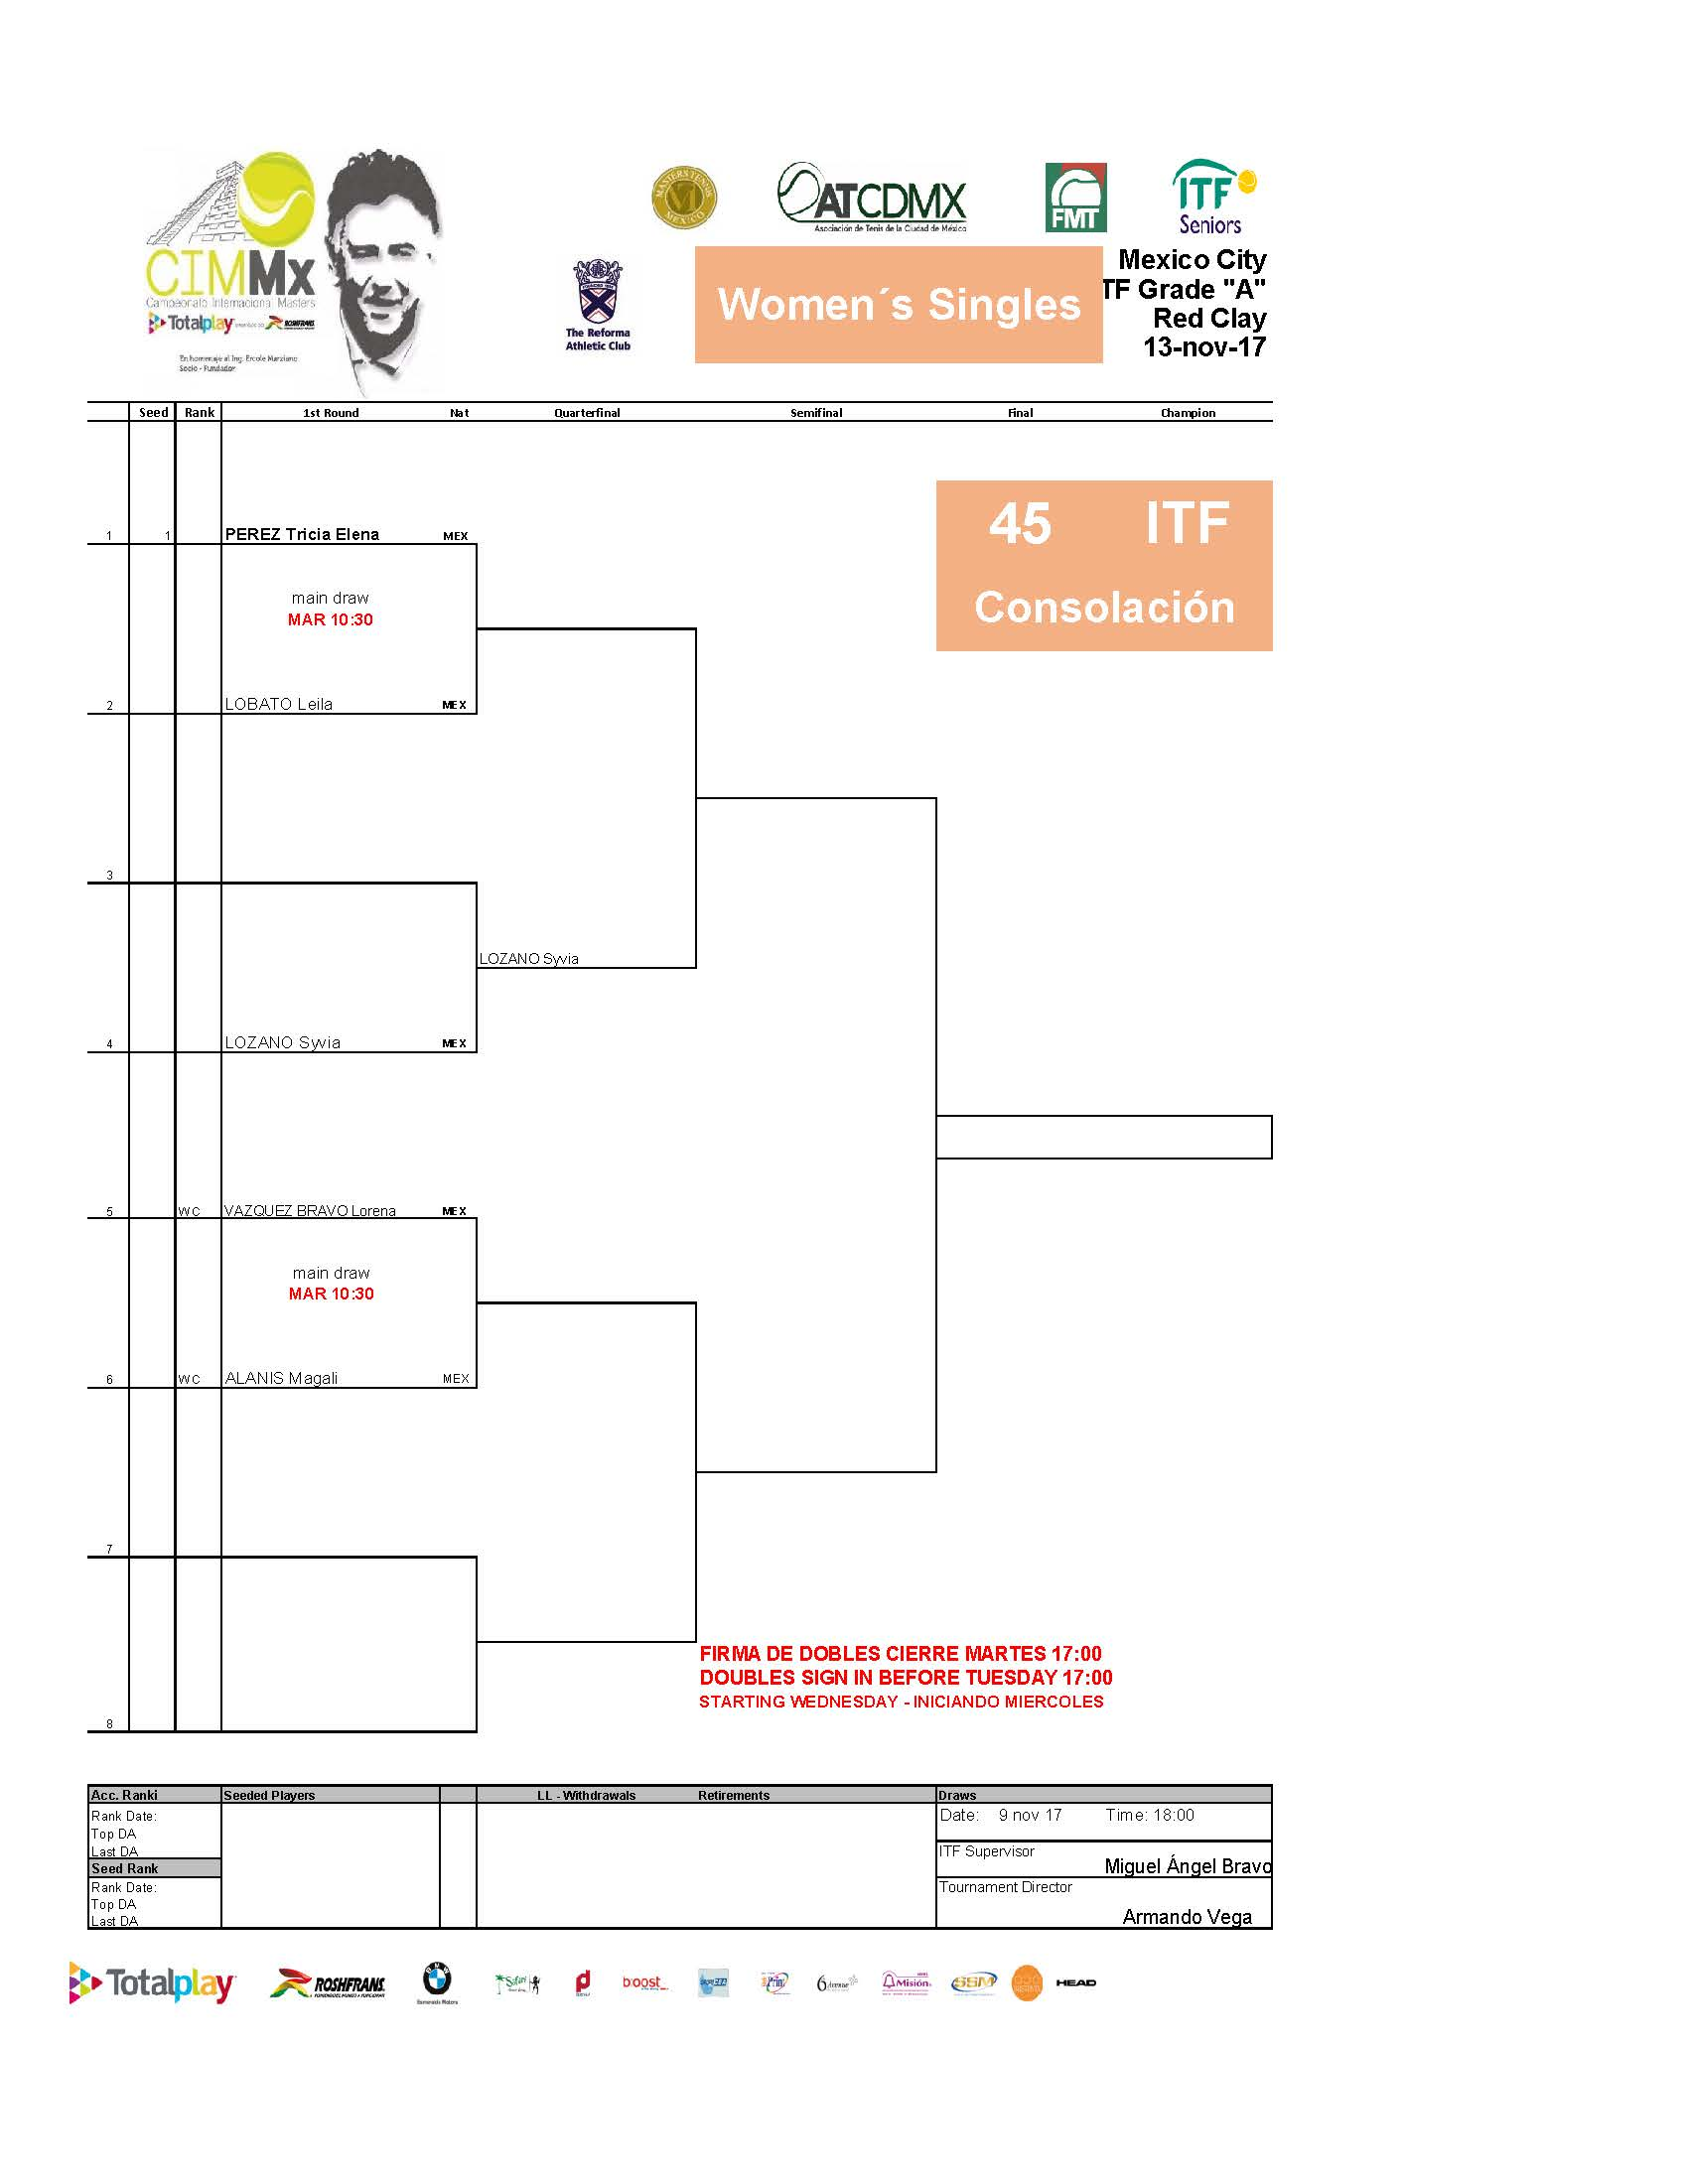 2   Draws ITF Pa Gina 18